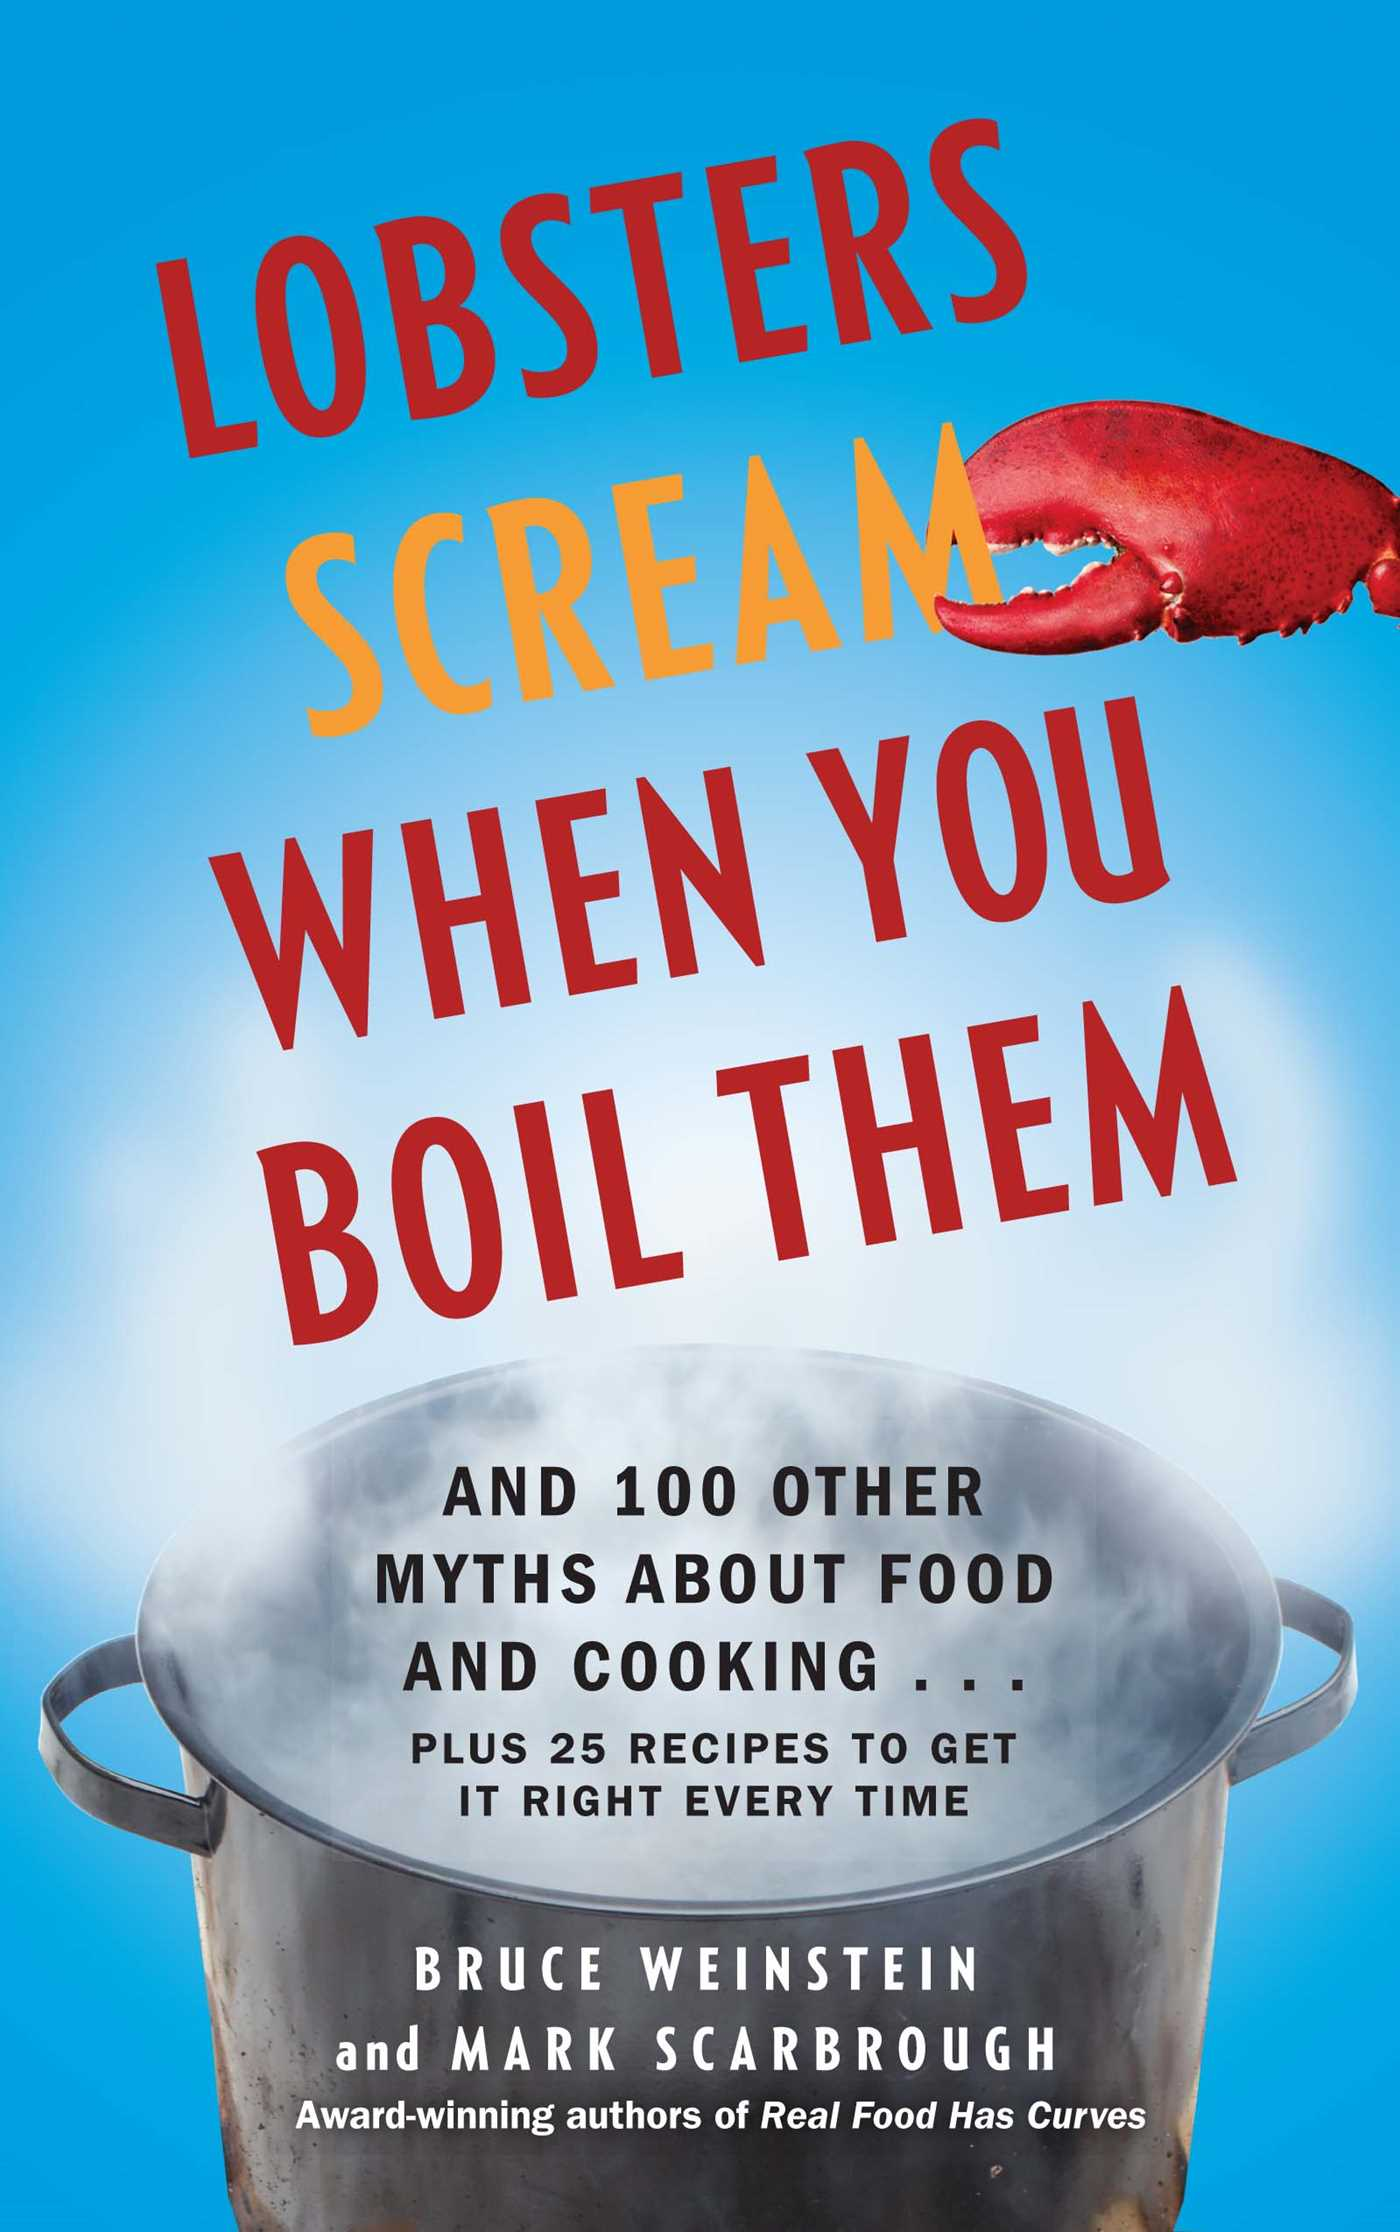 Lobsters-scream-when-you-boil-them-9781439195376_hr